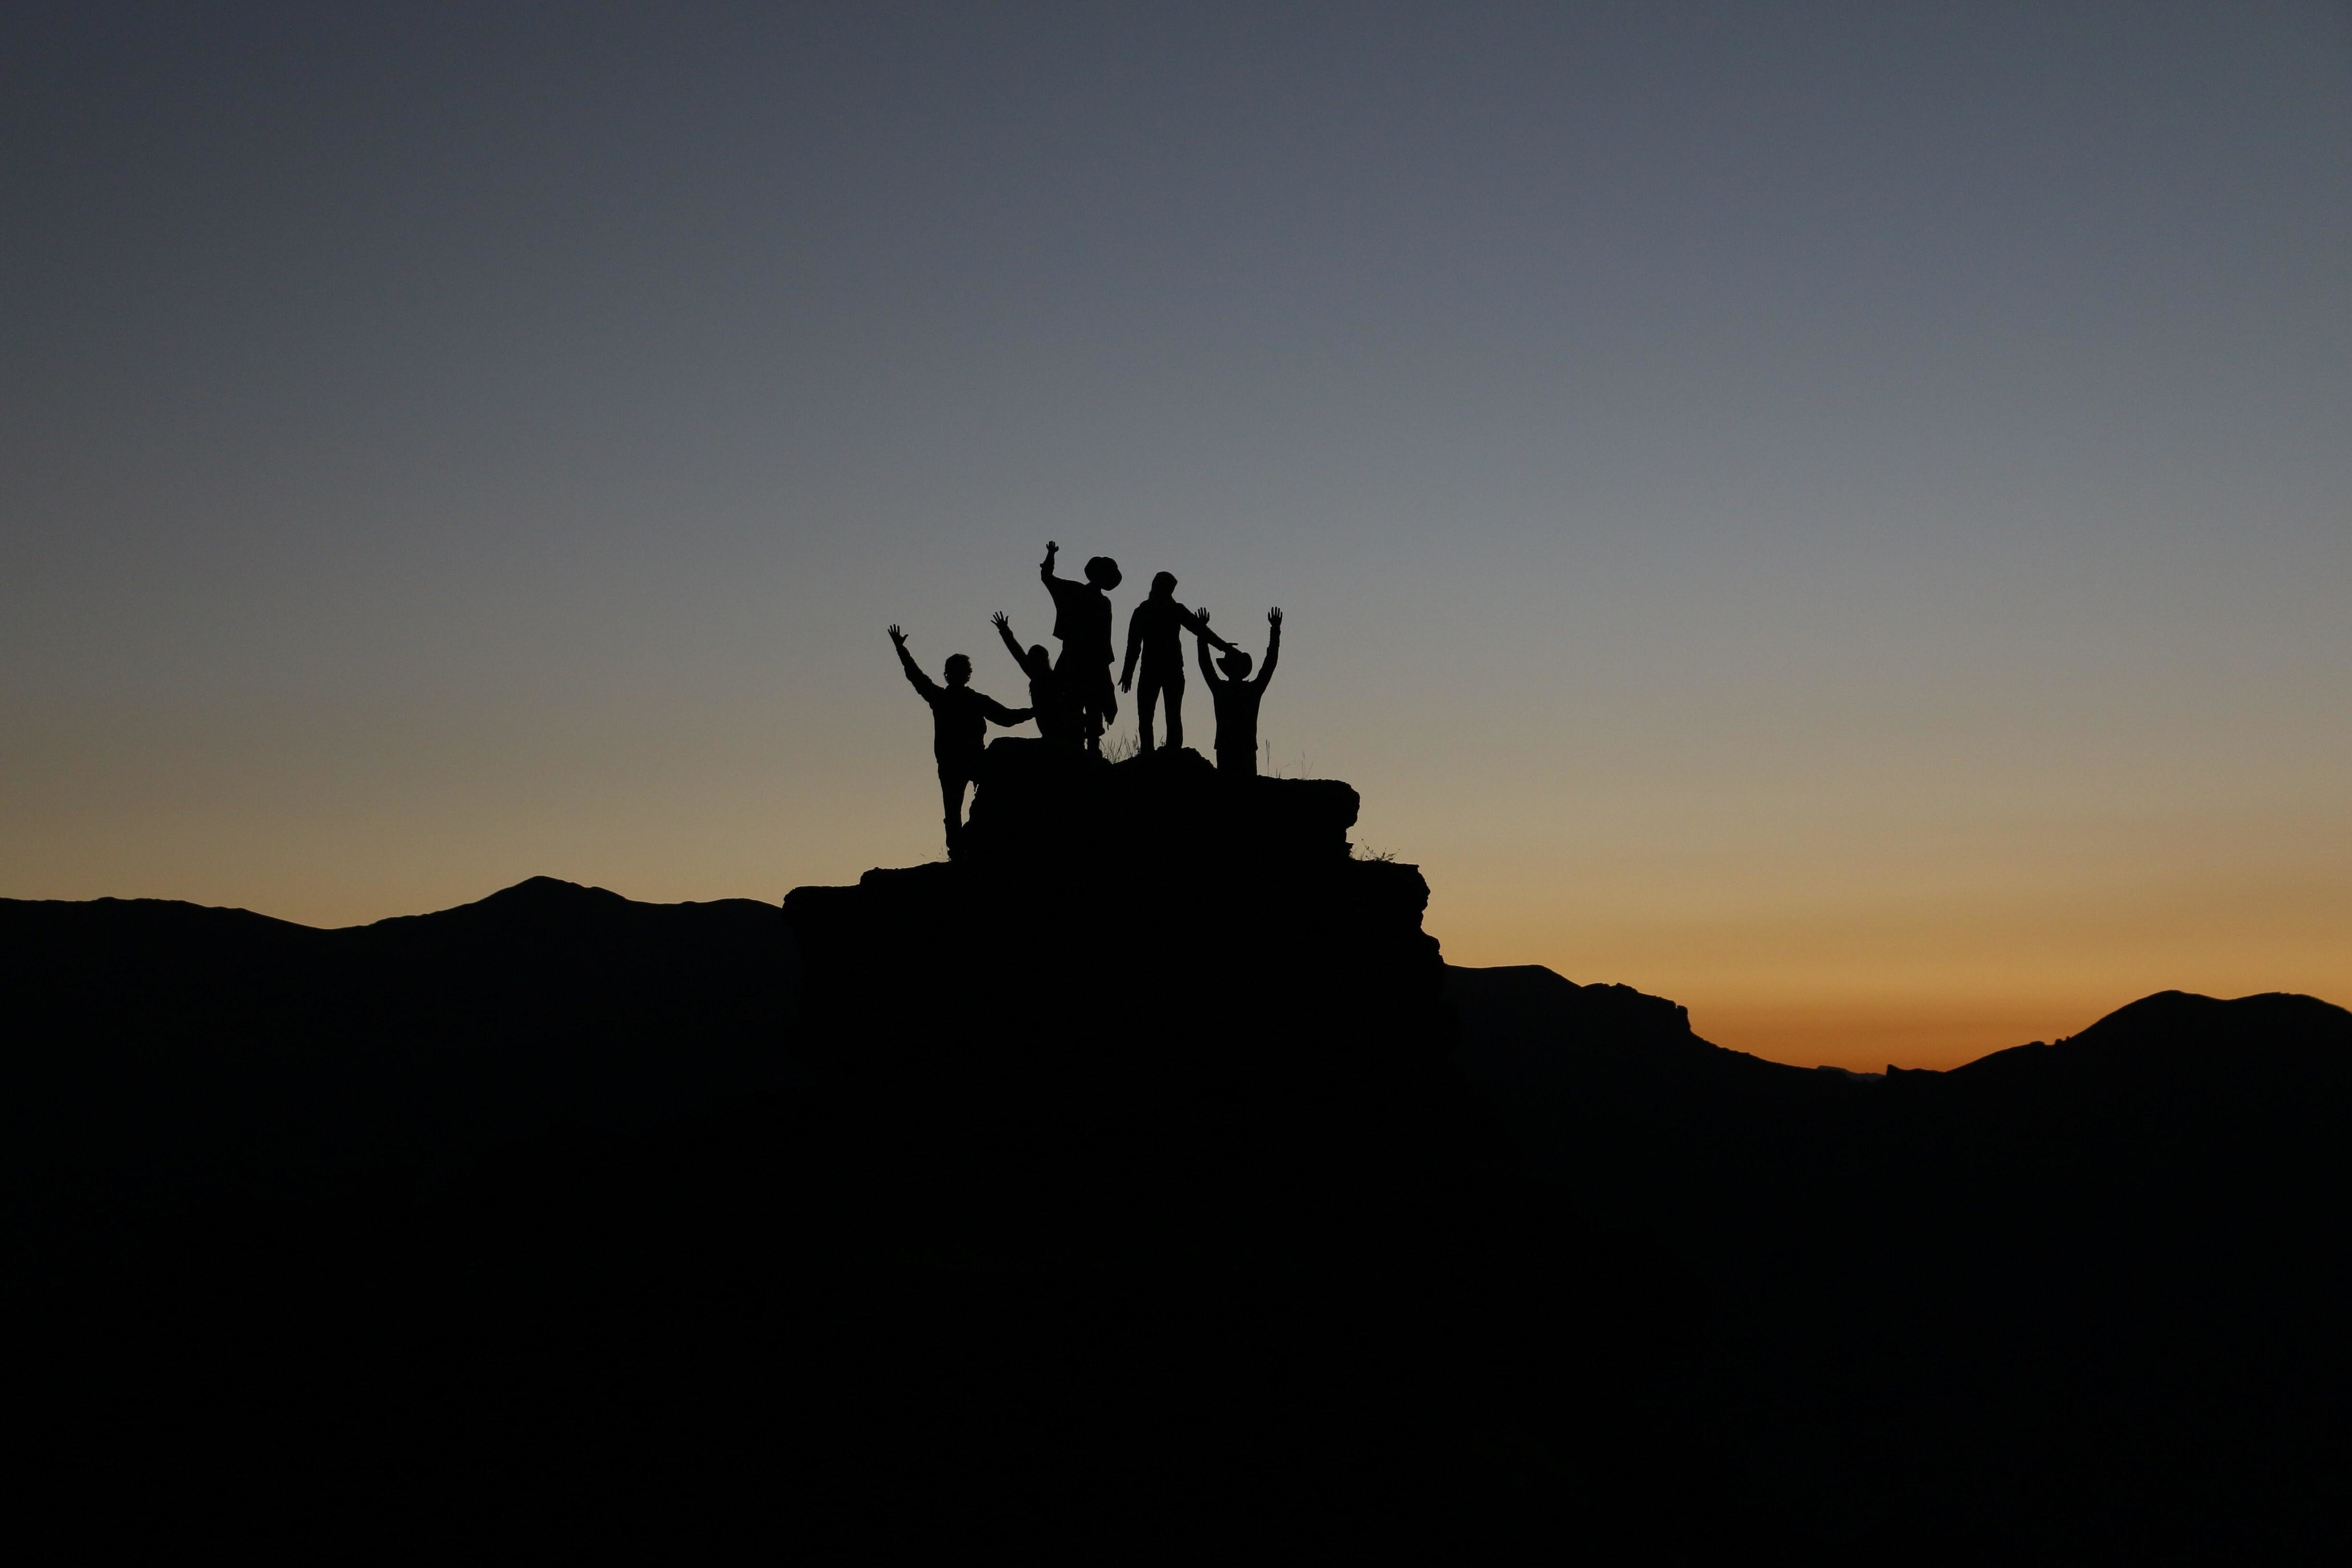 group of people climb to the top of a mountain and raise their hands in the air